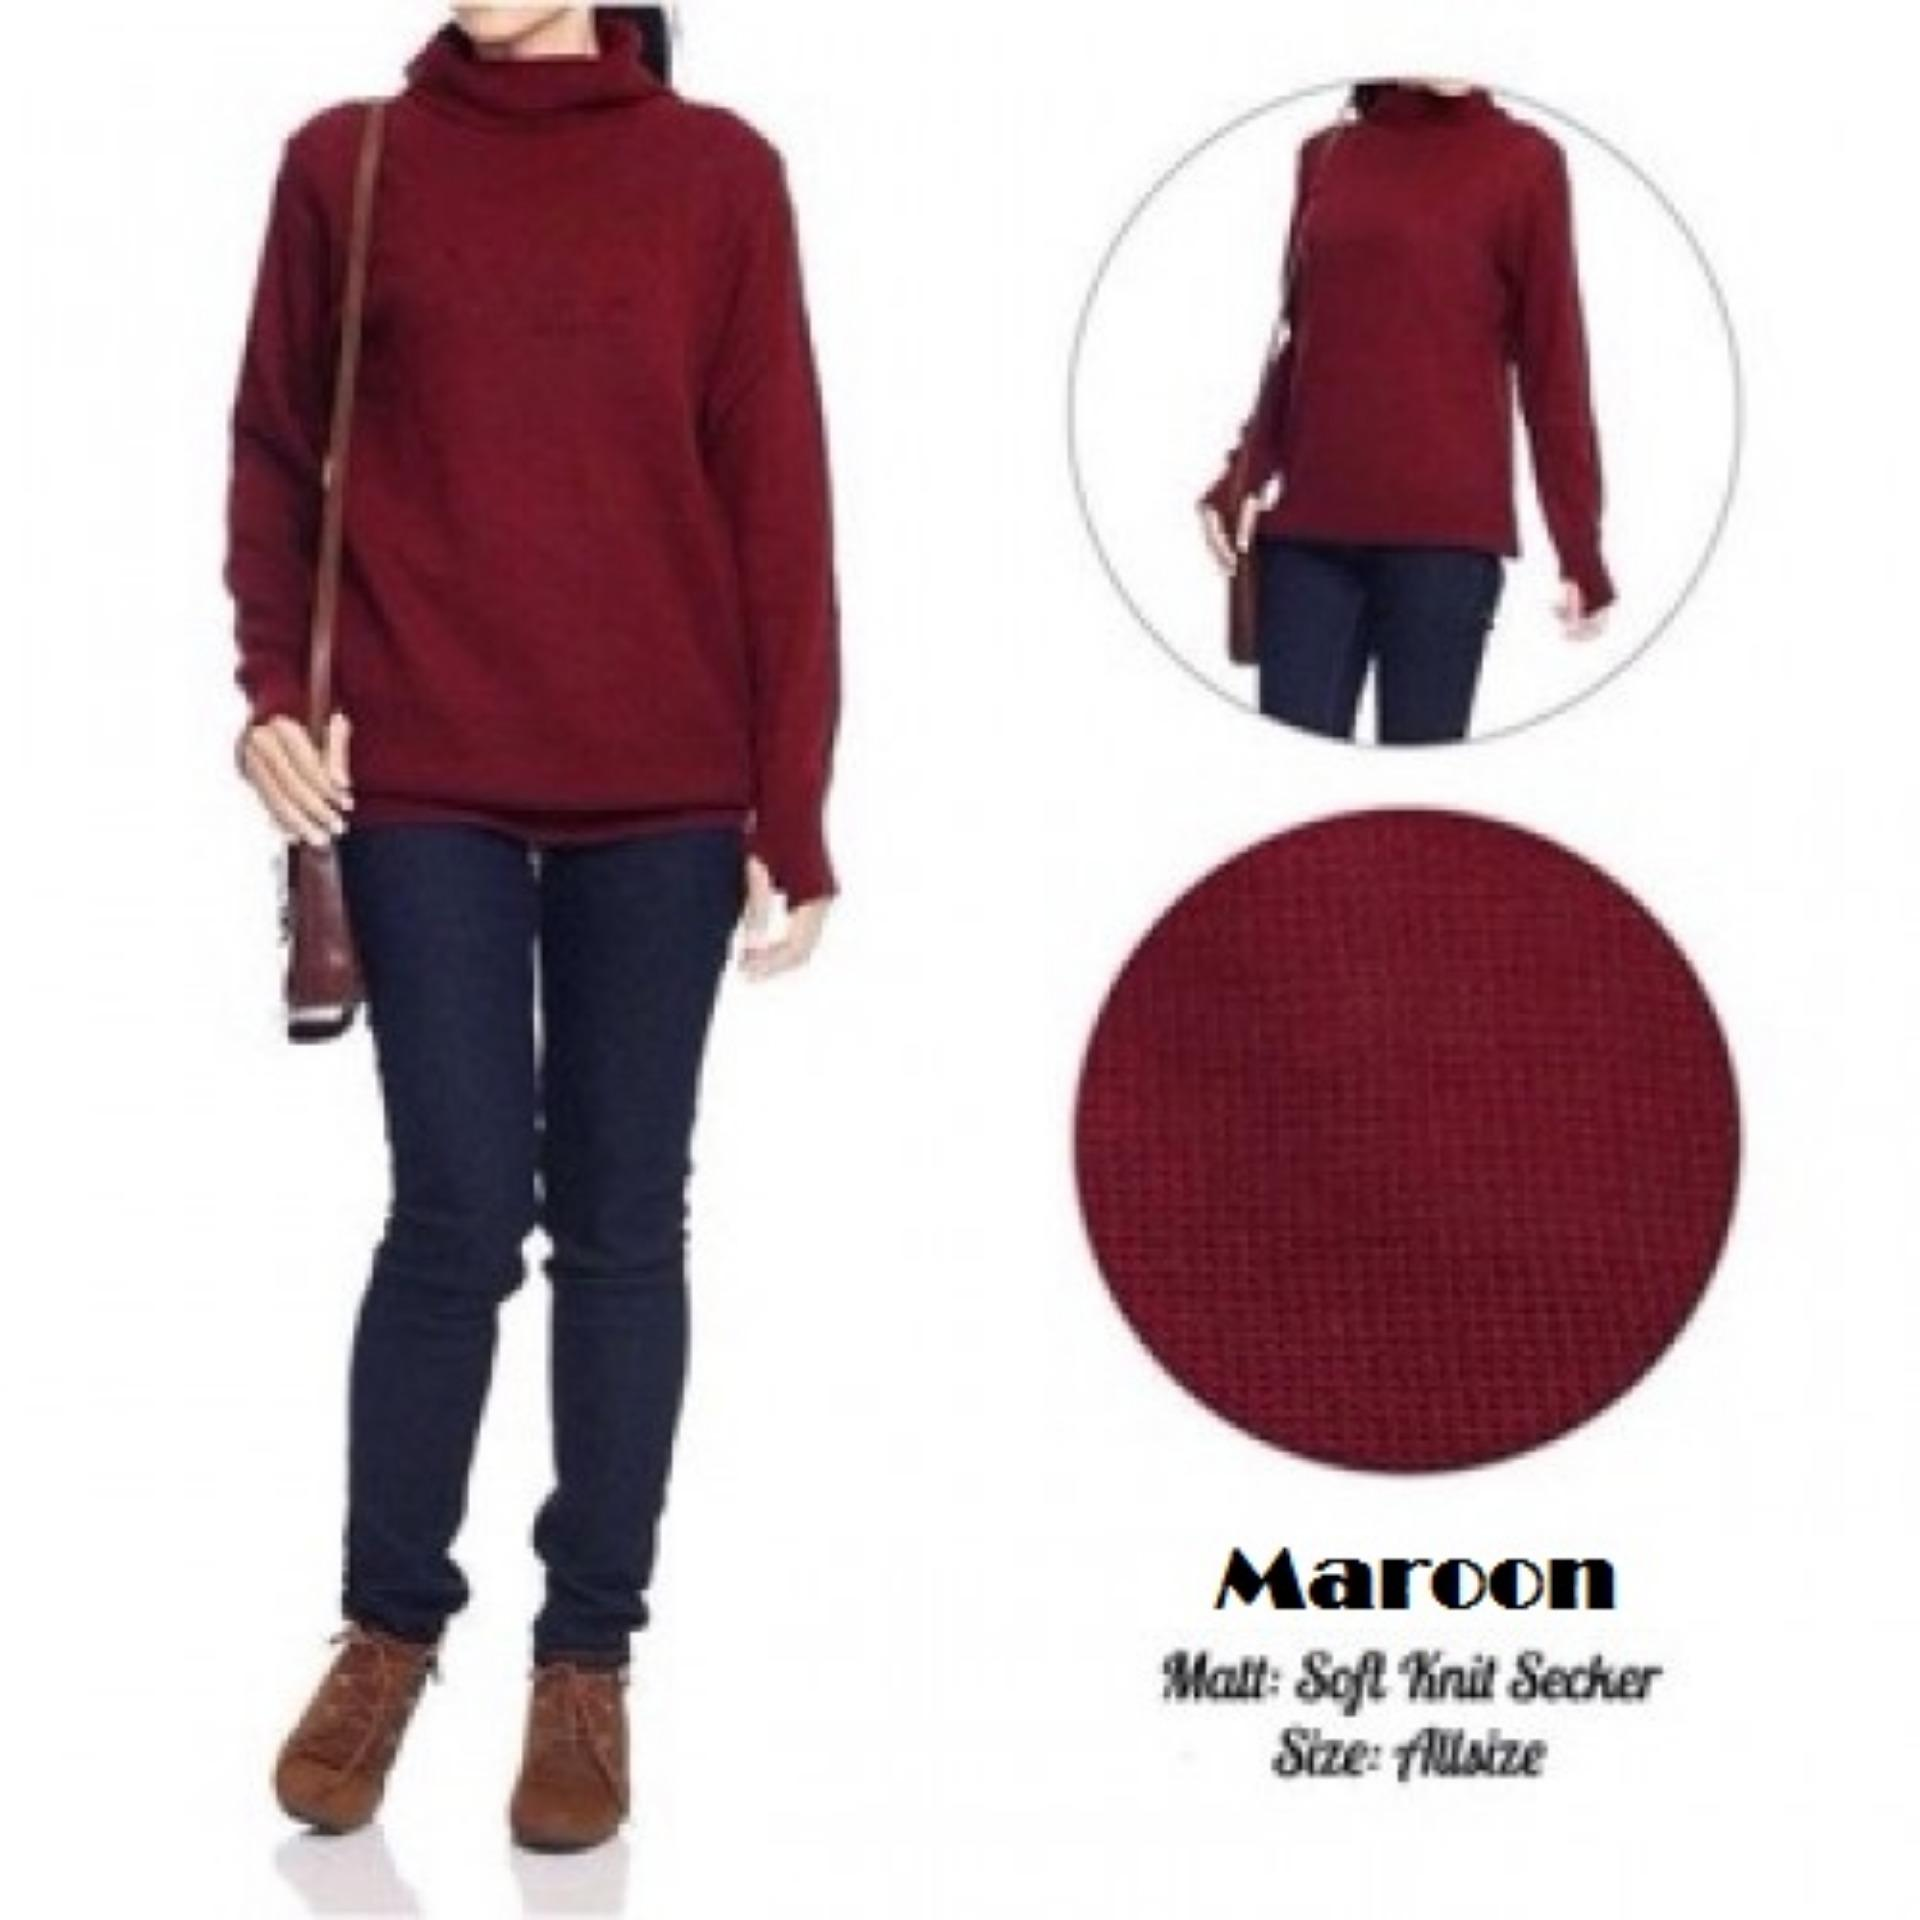 Sweater Roundhand Turtle Neck Secker Sweater Baju Hangat Rajut Premium Tebal Rajut Maroon Original